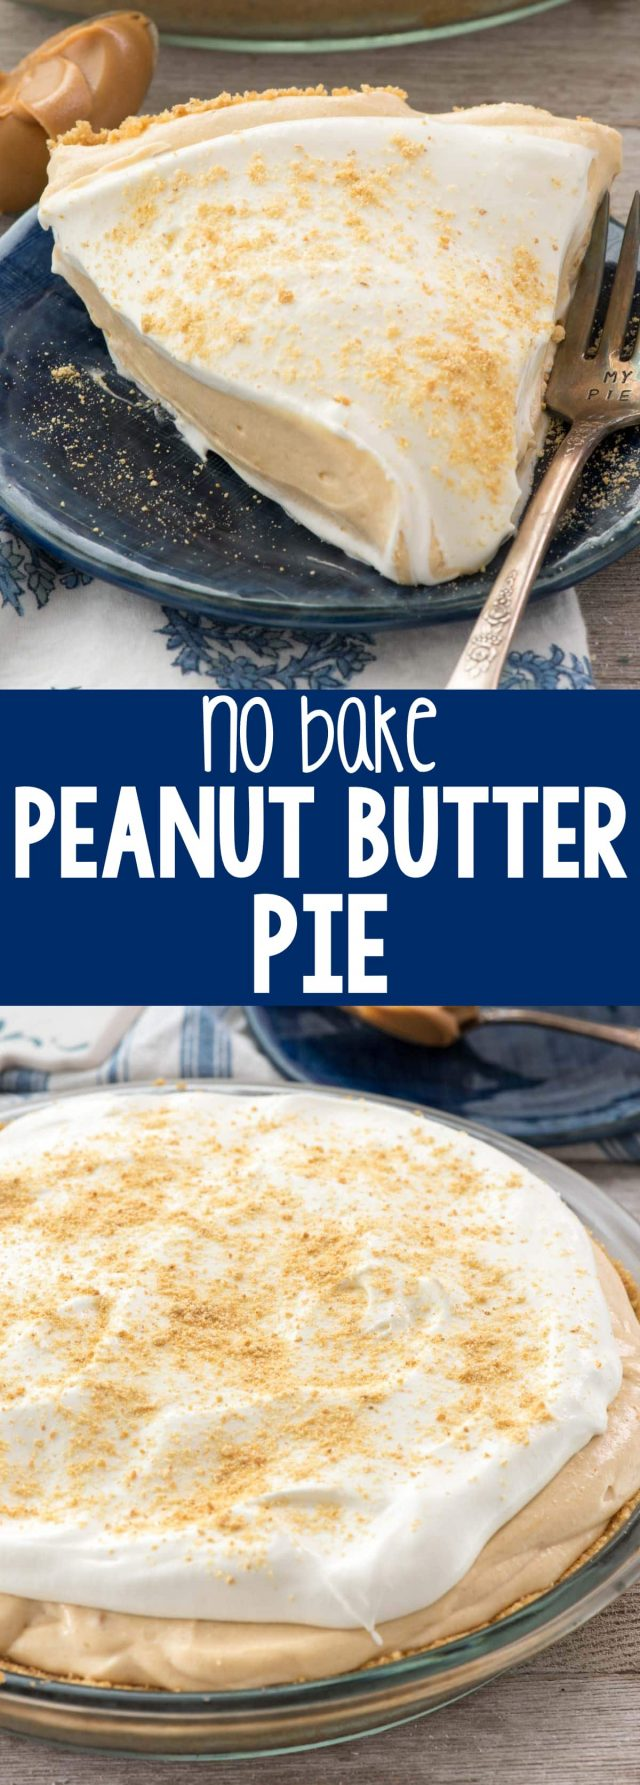 Peanut Butter Pie - this easy no bake pie recipe is all peanut butter ...